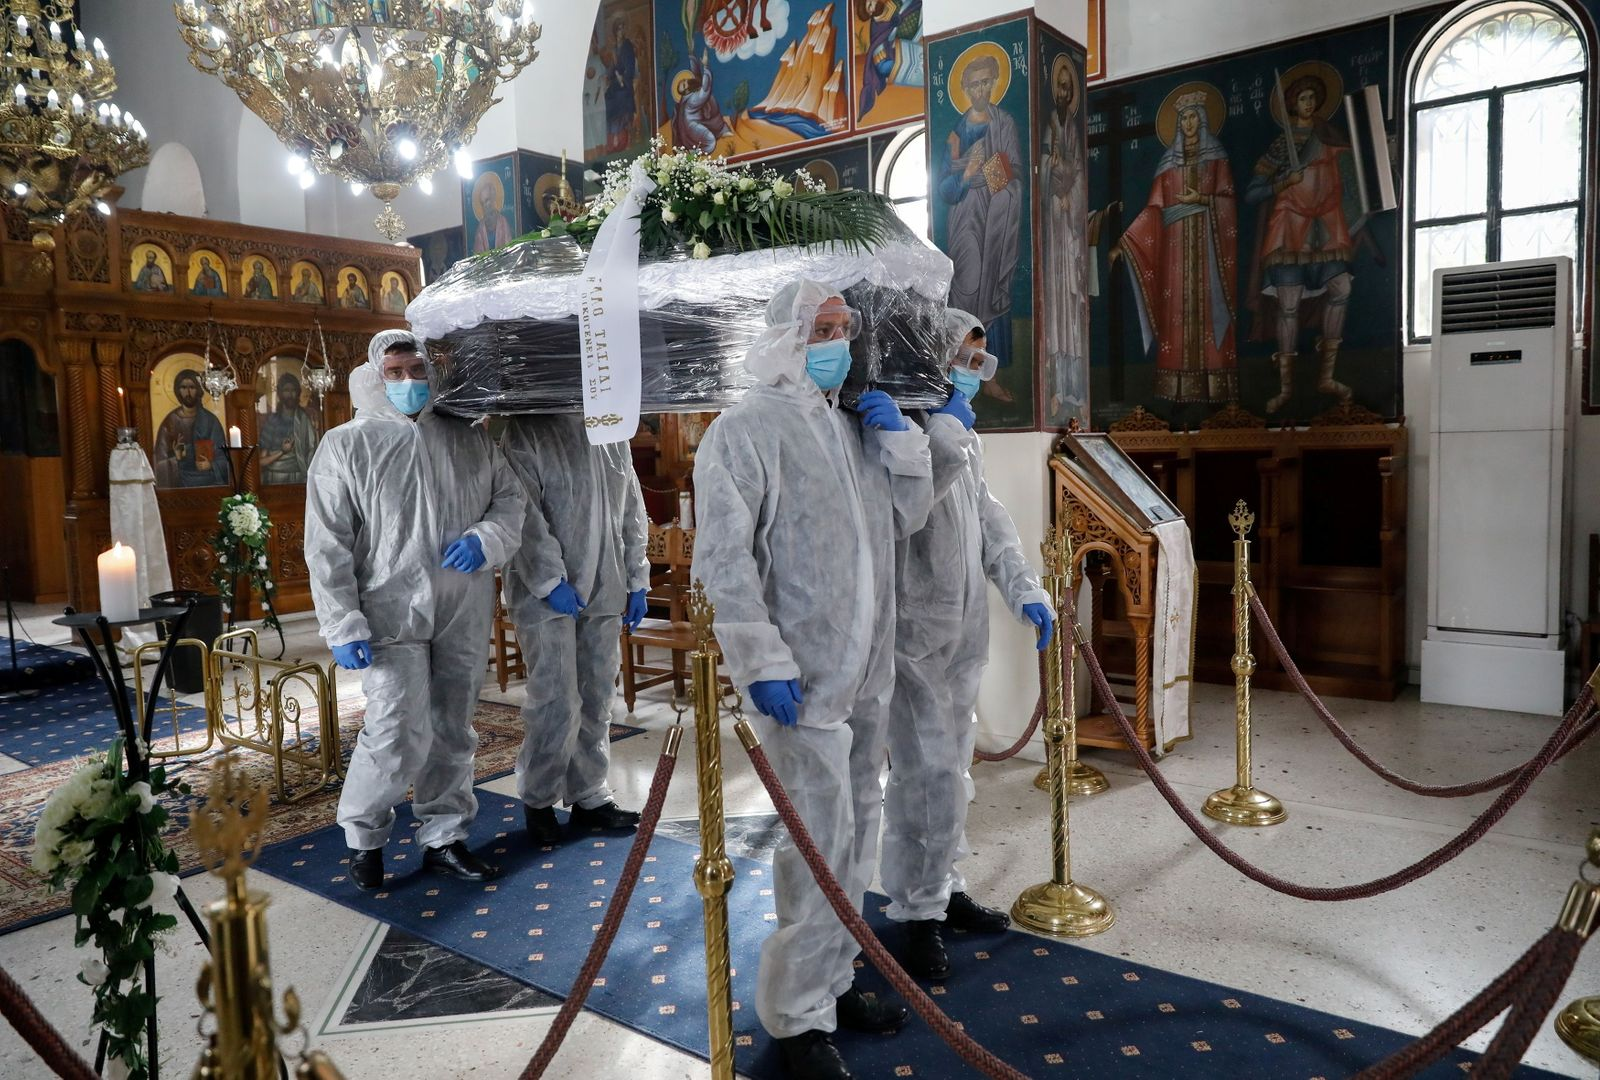 Pallbearers, wearing personal protective equipment (PPE), carry the coffin of a patient who died from the coronavirus disease (COVID-19), inside a church in Athens